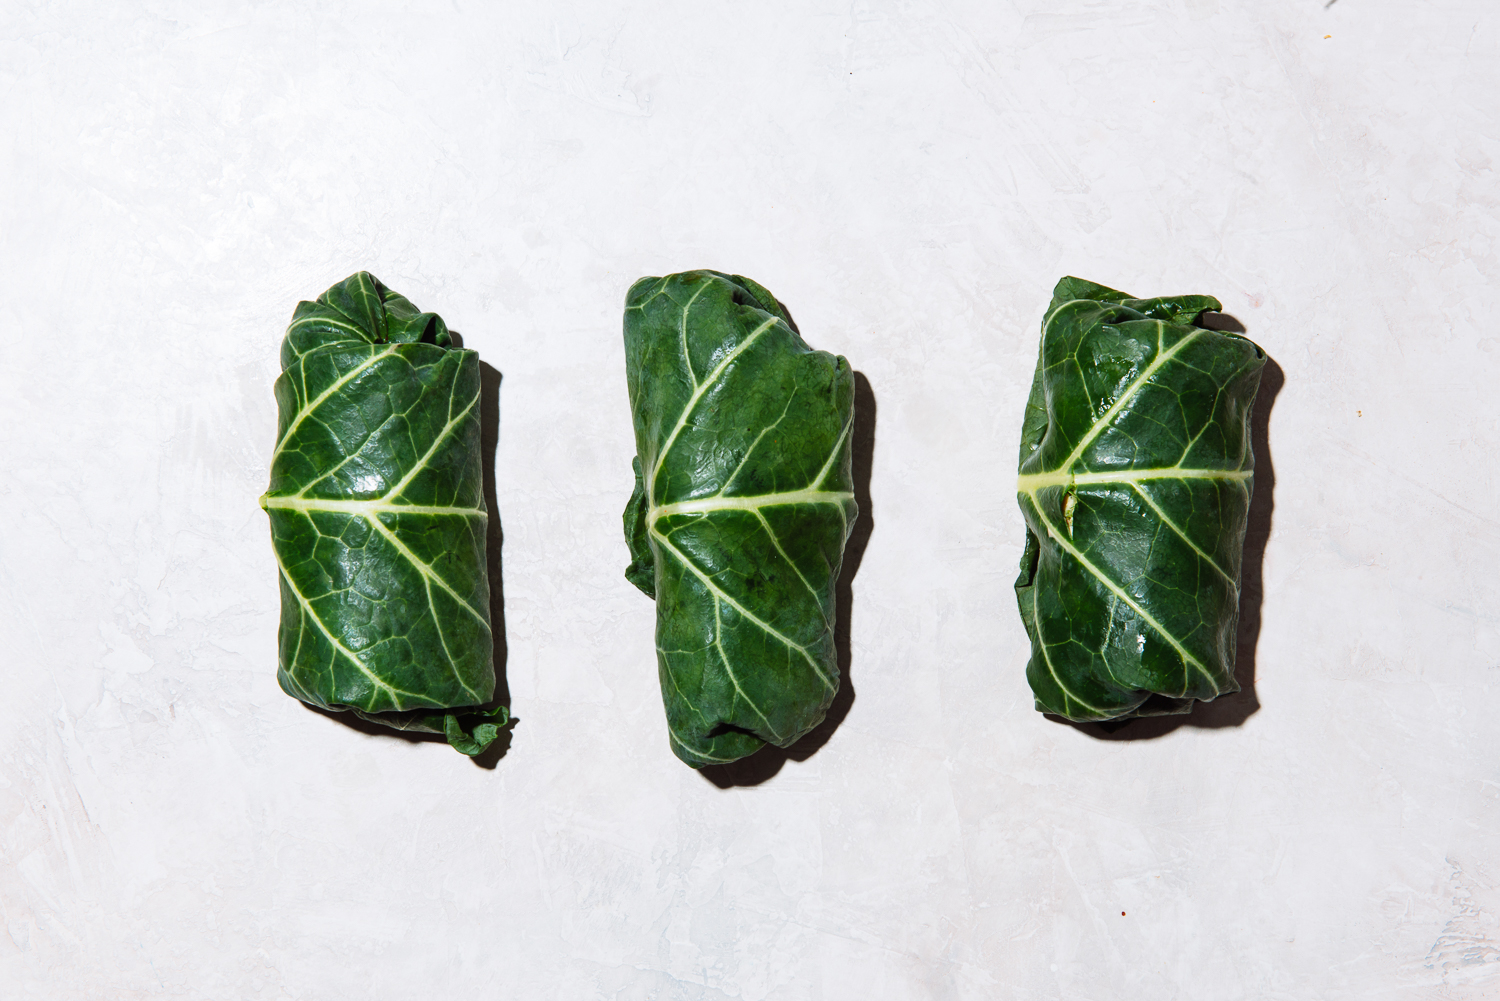 Whole 30 and Low-FODMAP collard wraps